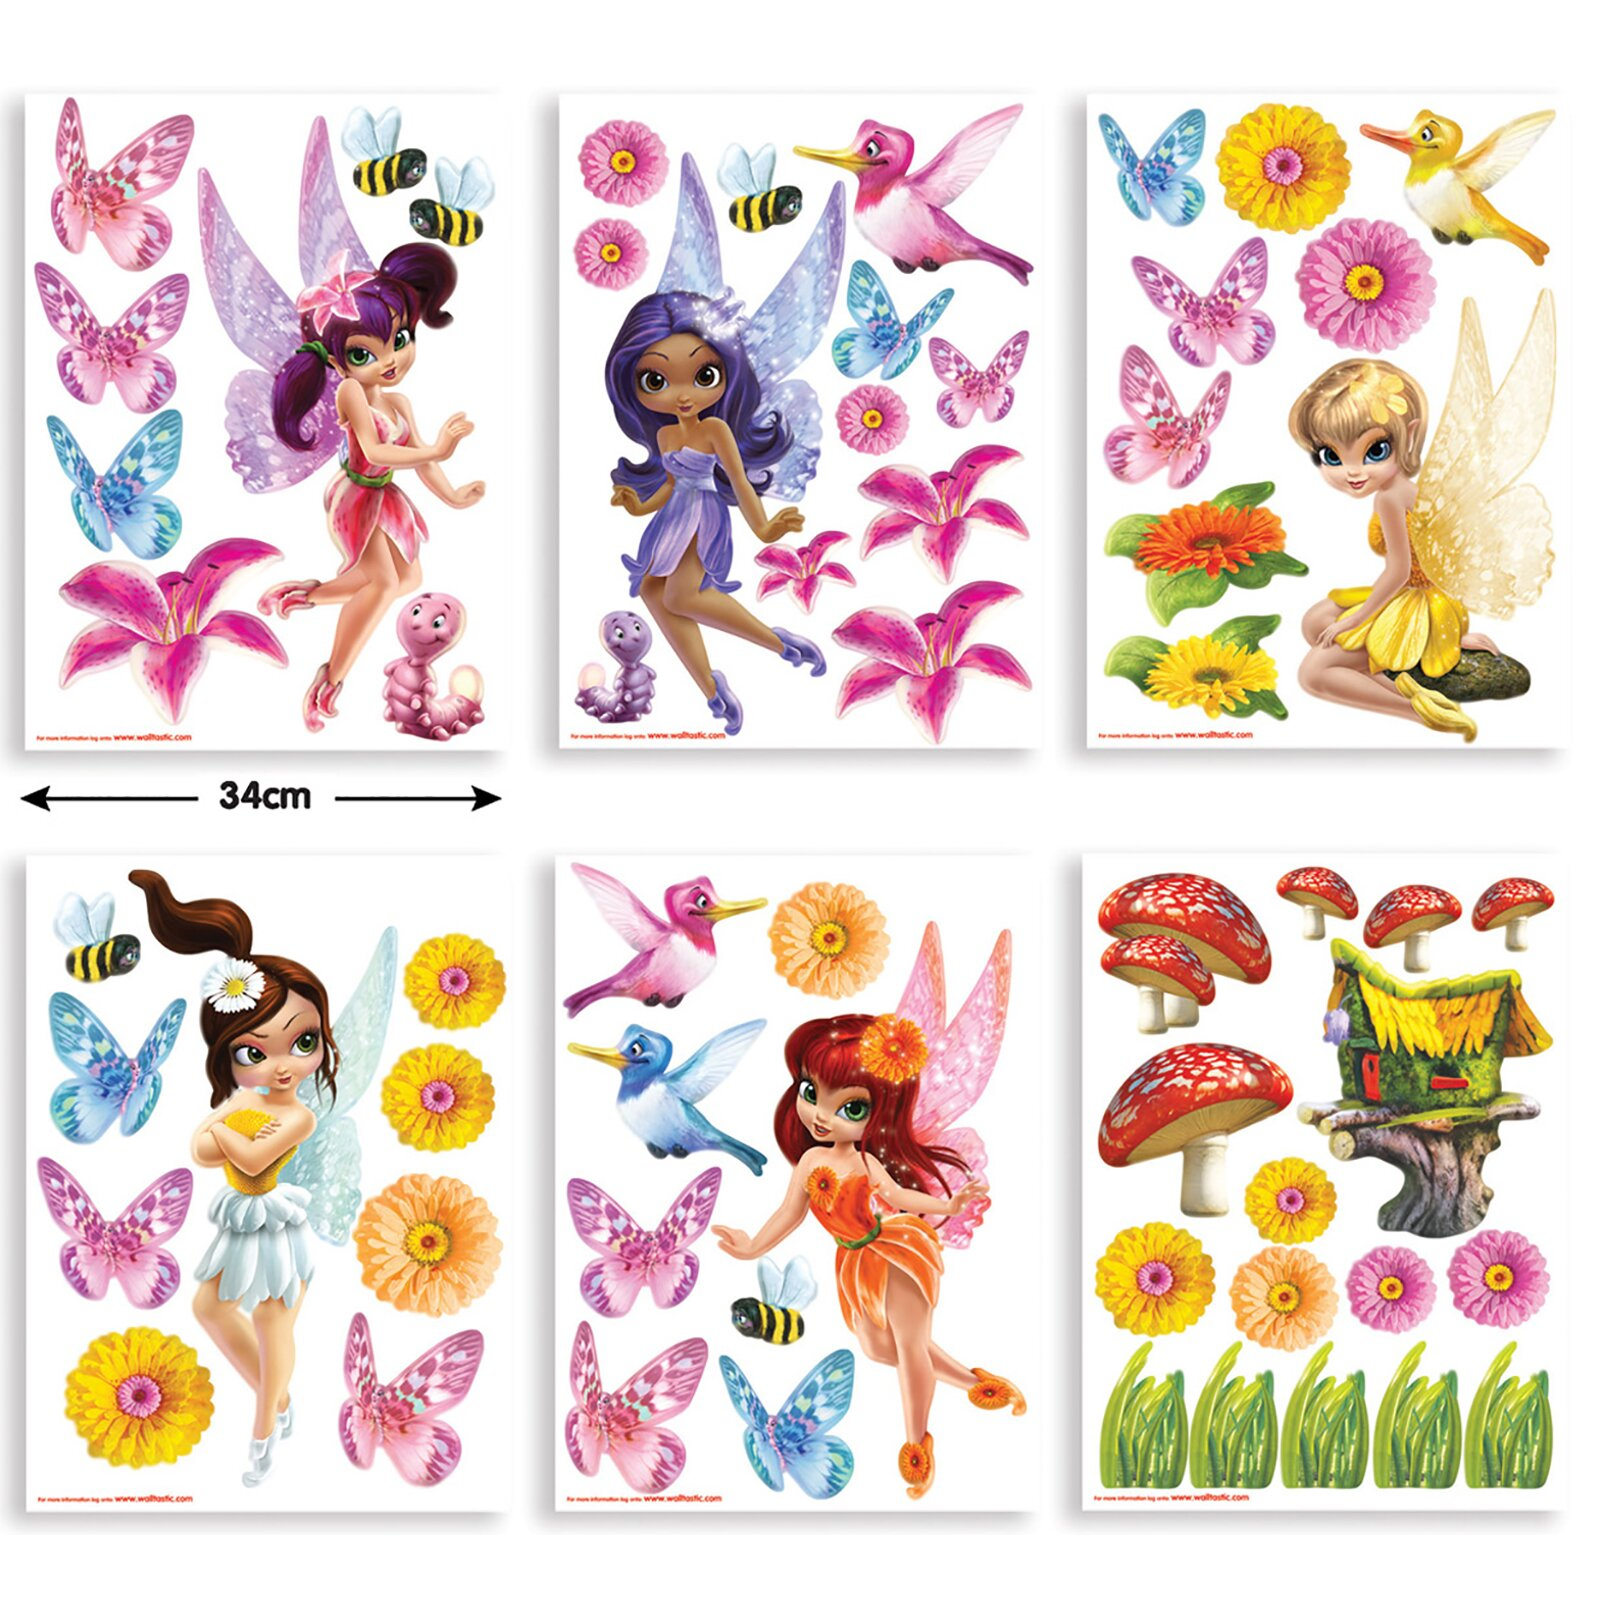 Wall Art Stickers Next Day Delivery : Wallpops walltastic wall art magical fairies decal